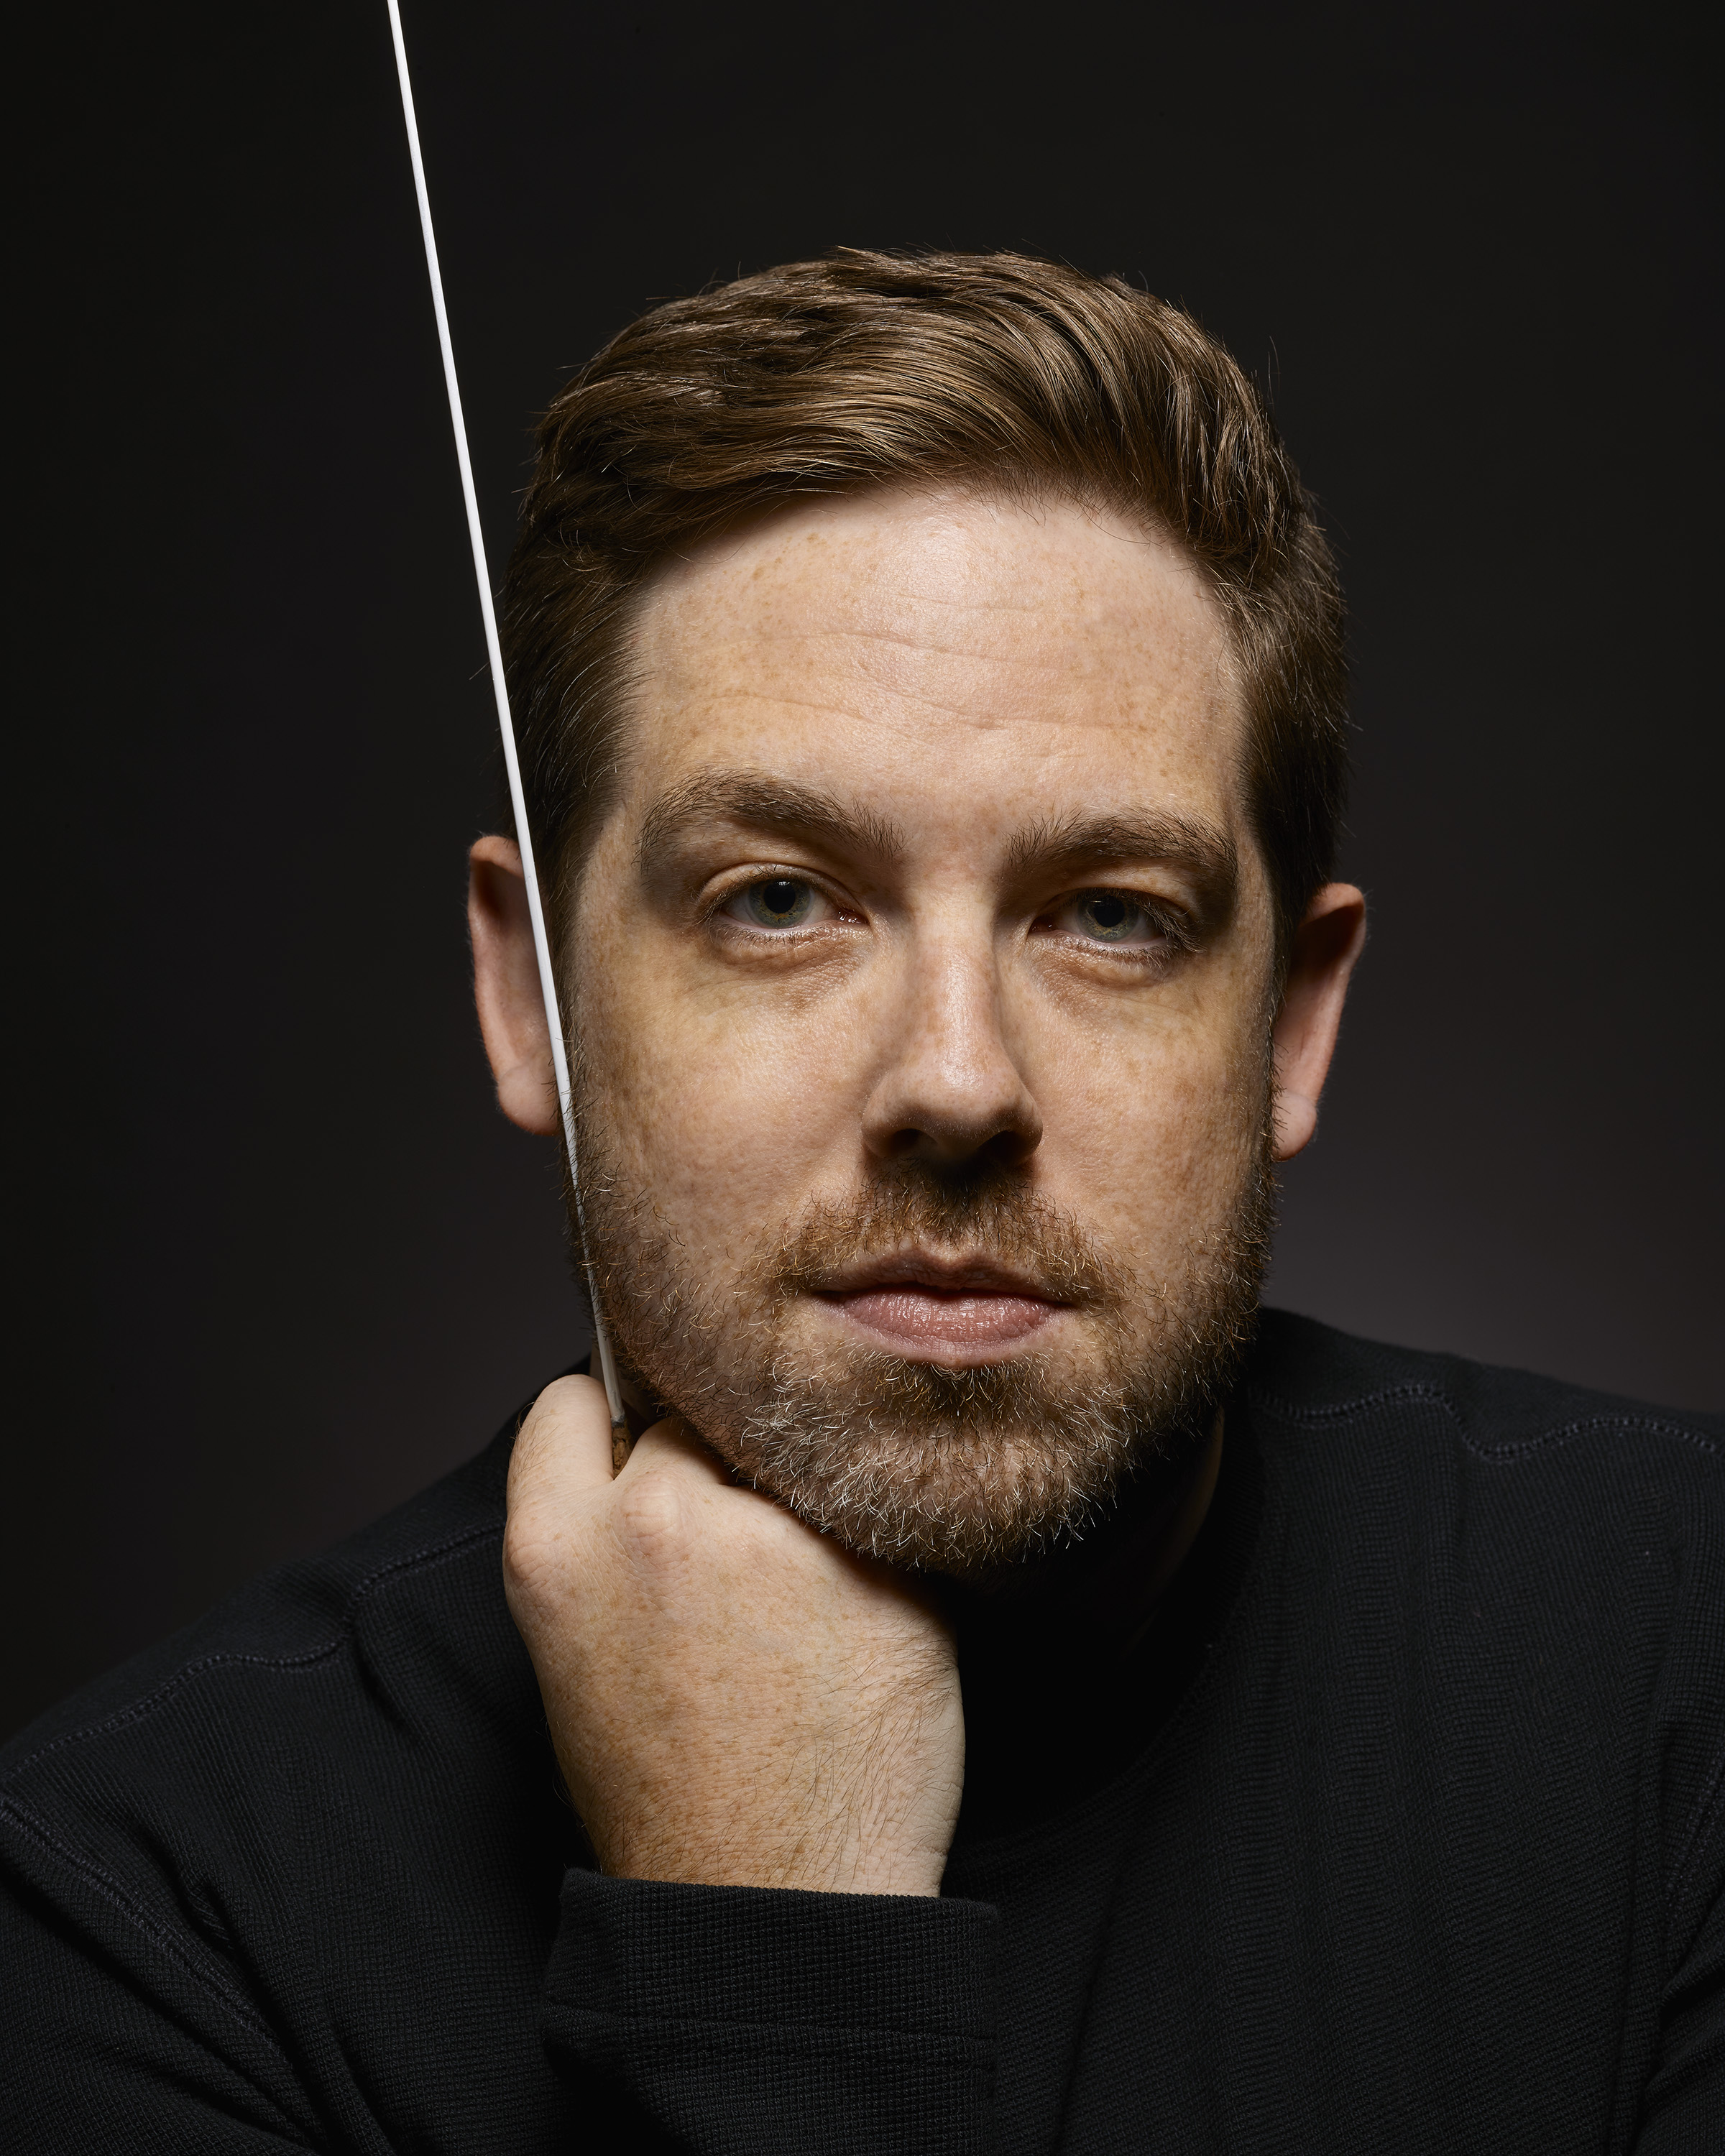 Brett Mitchell, associate conductor of the Cleveland Orchestra, has been appointed music director of the Colorado Symphony. He begins as music director designate and takes up the full mantle in 2017. (Photo by Roger Mastroianni)